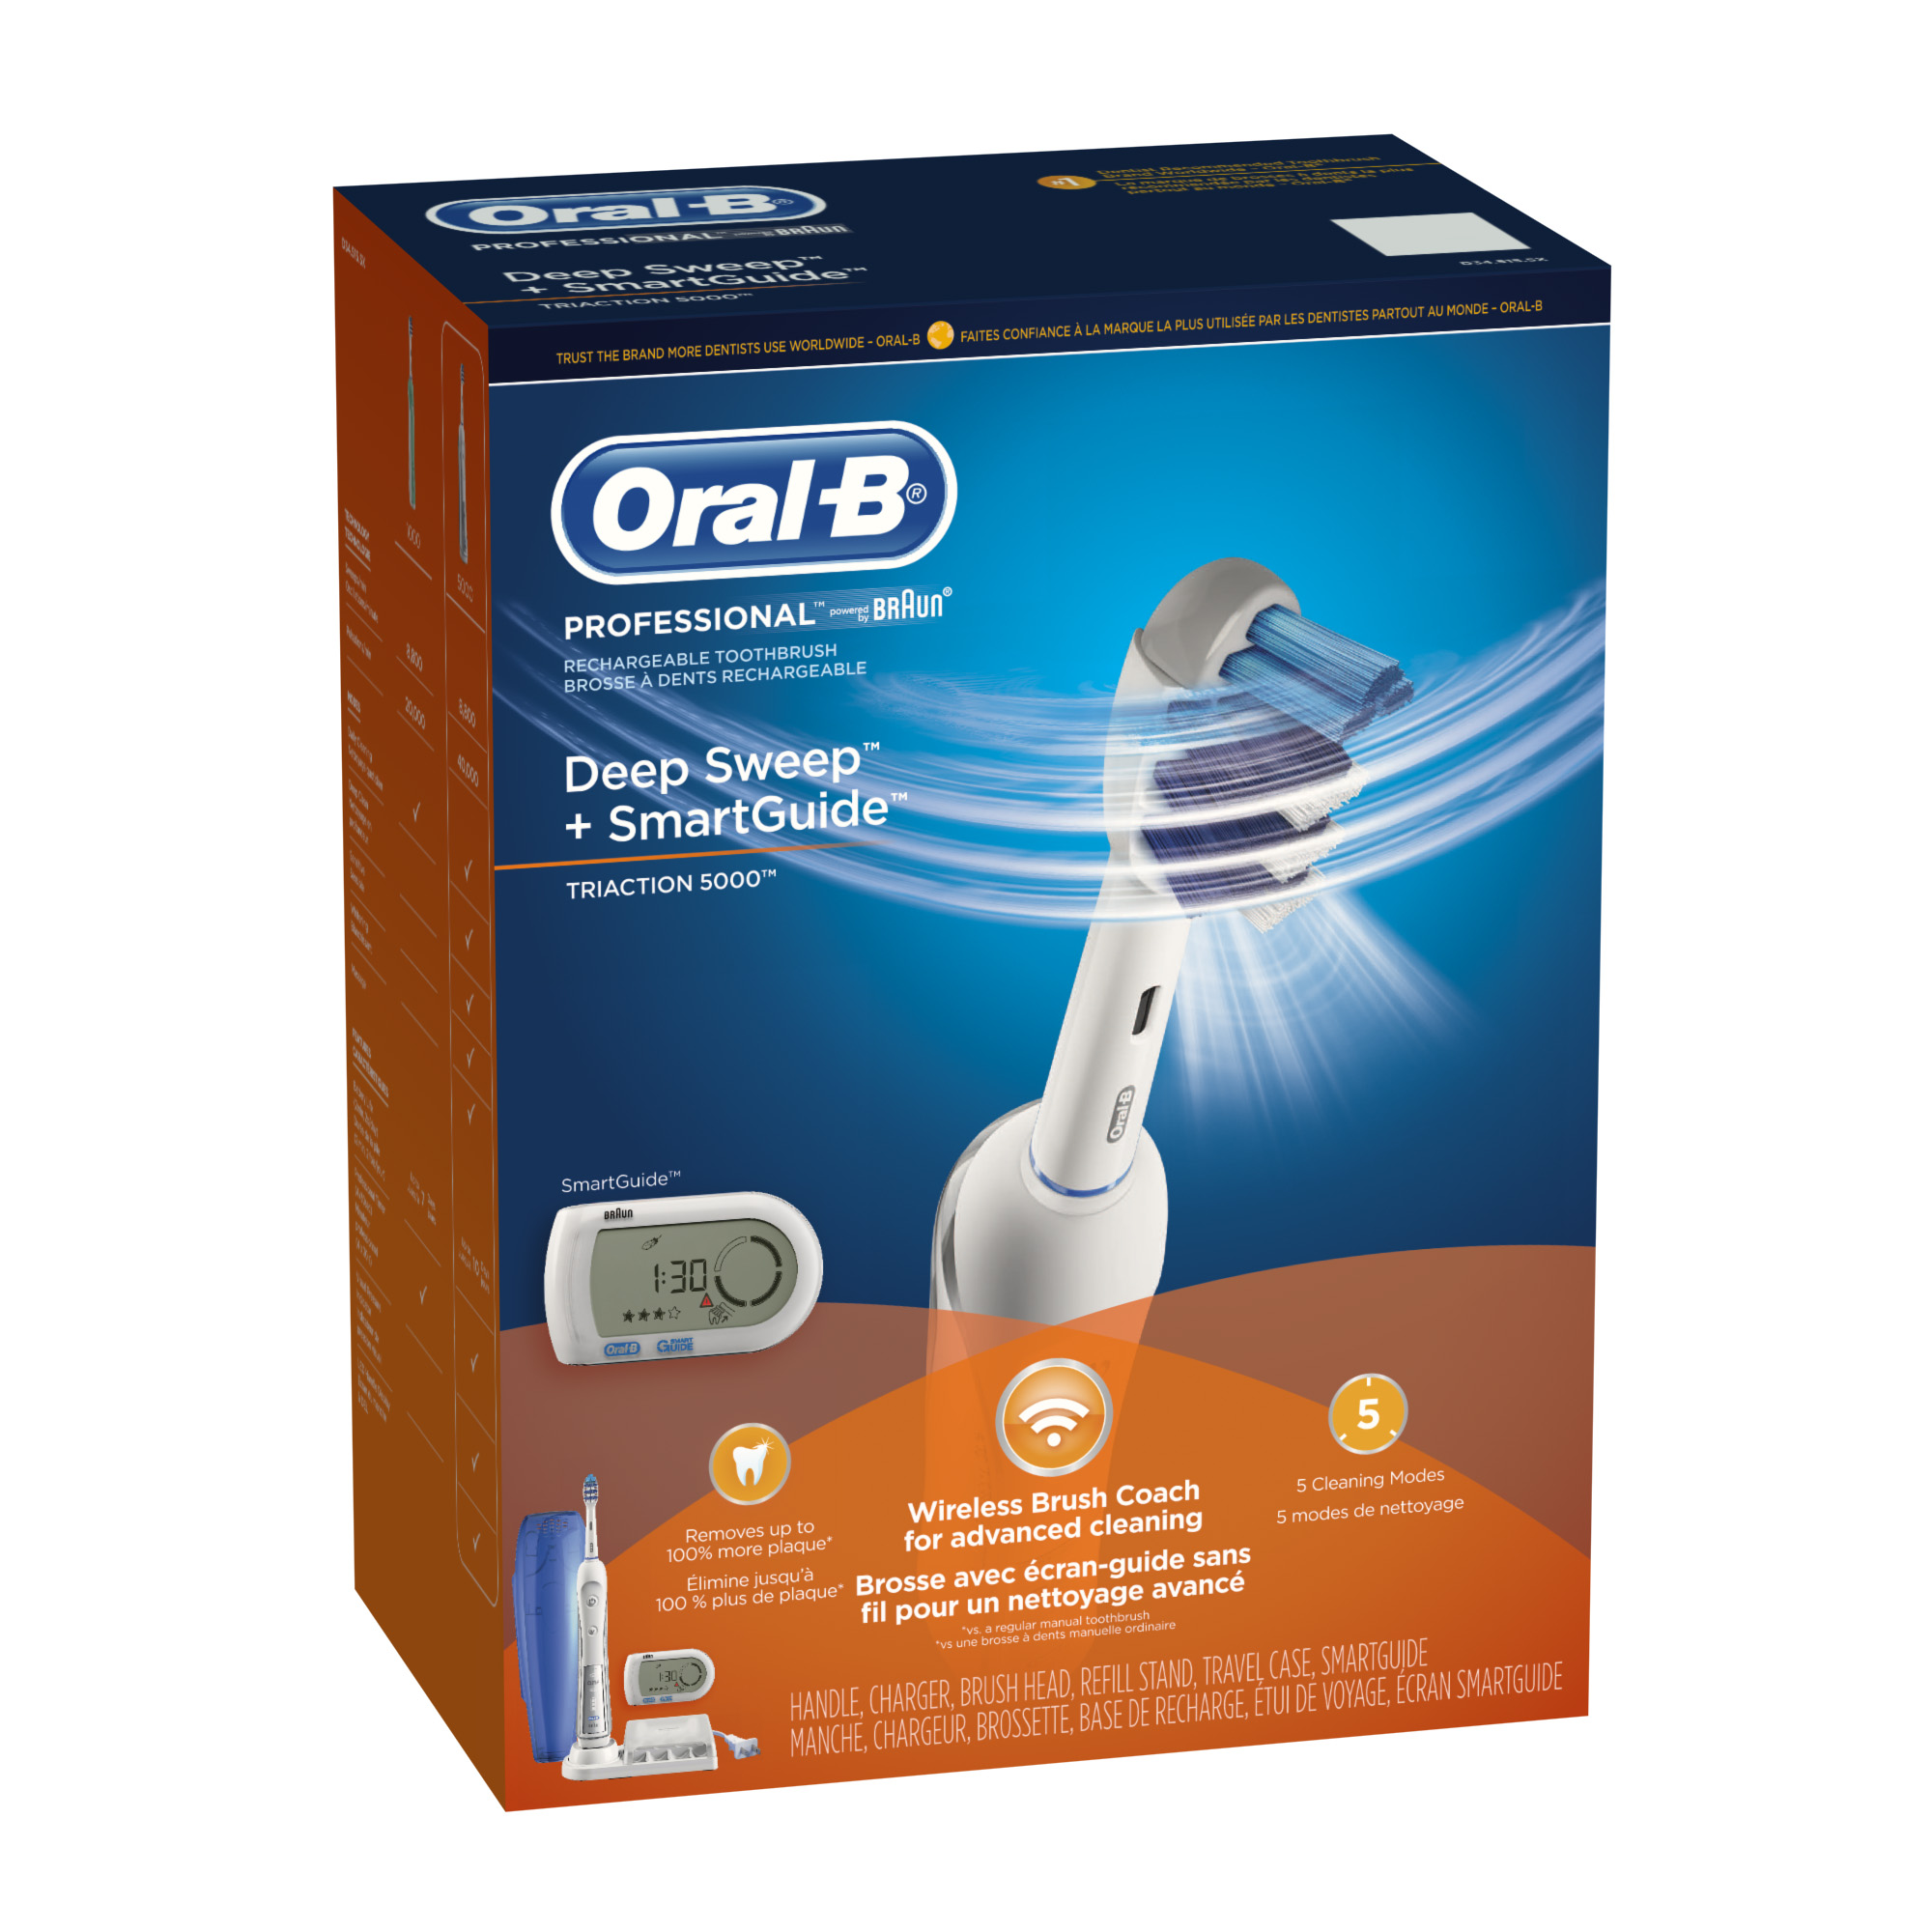 Oral-B Professional Deep Sweep + SmartGuide 5000 Rechargeable Electric Toothbrush - GamesPlus